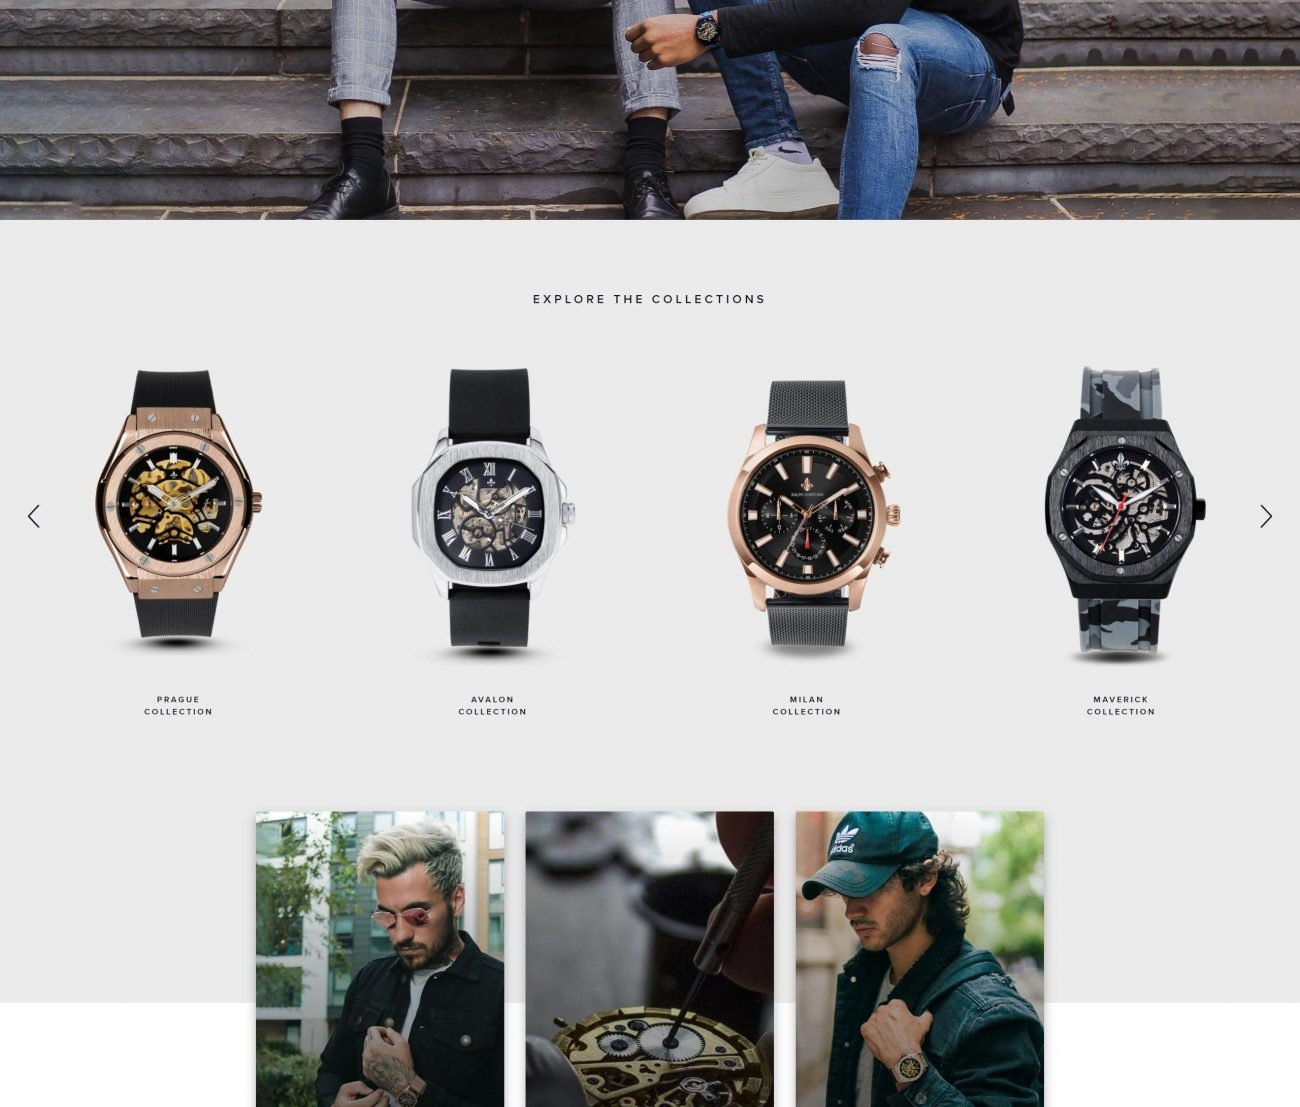 watch product animation for ralph christian website